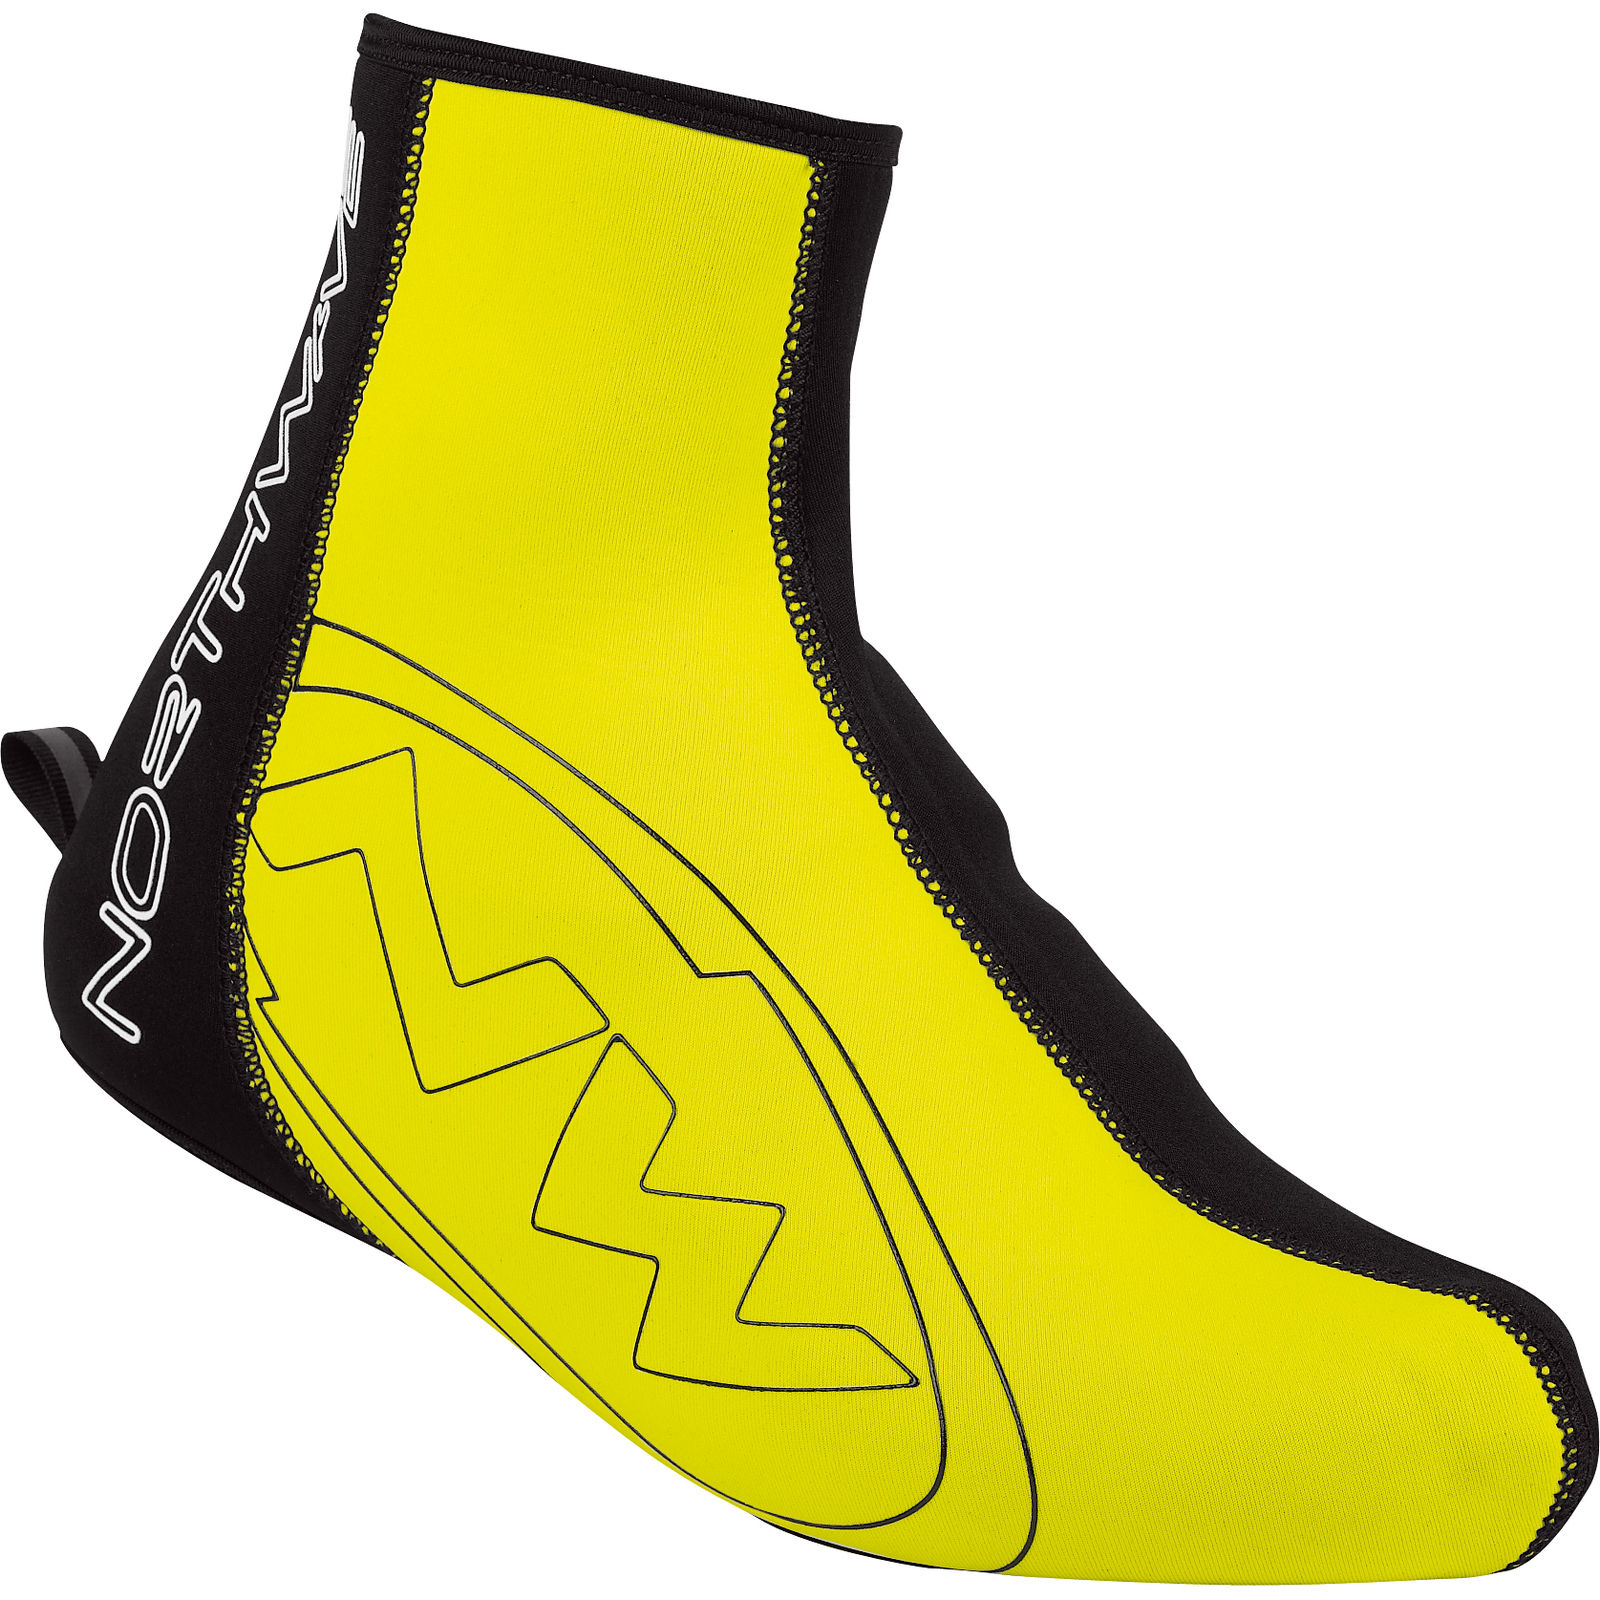 Lange fietsbroek test